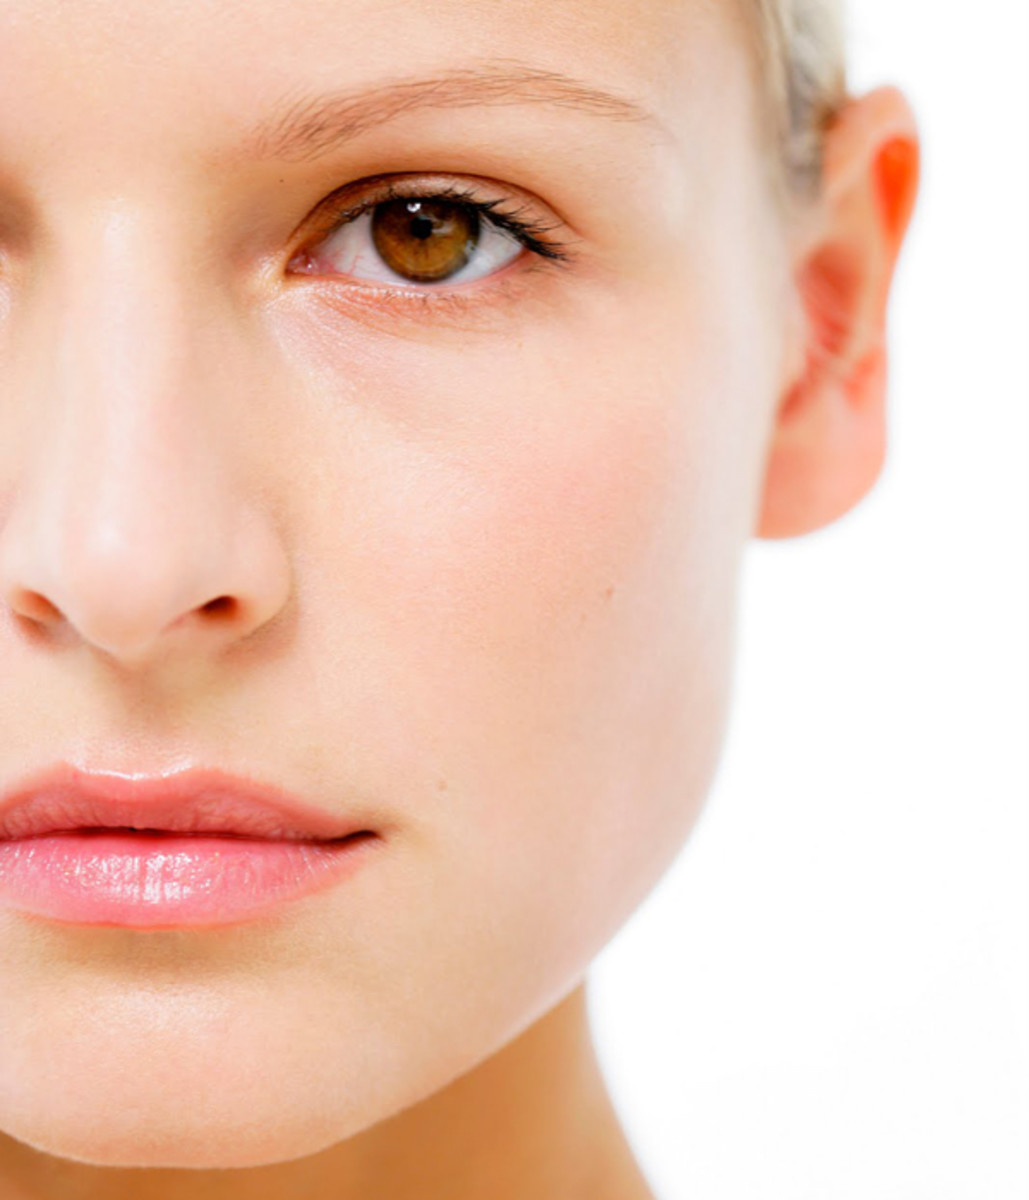 Flawless Skin: Should You Self-Treat Your Acne Or Go See A Dermatologist